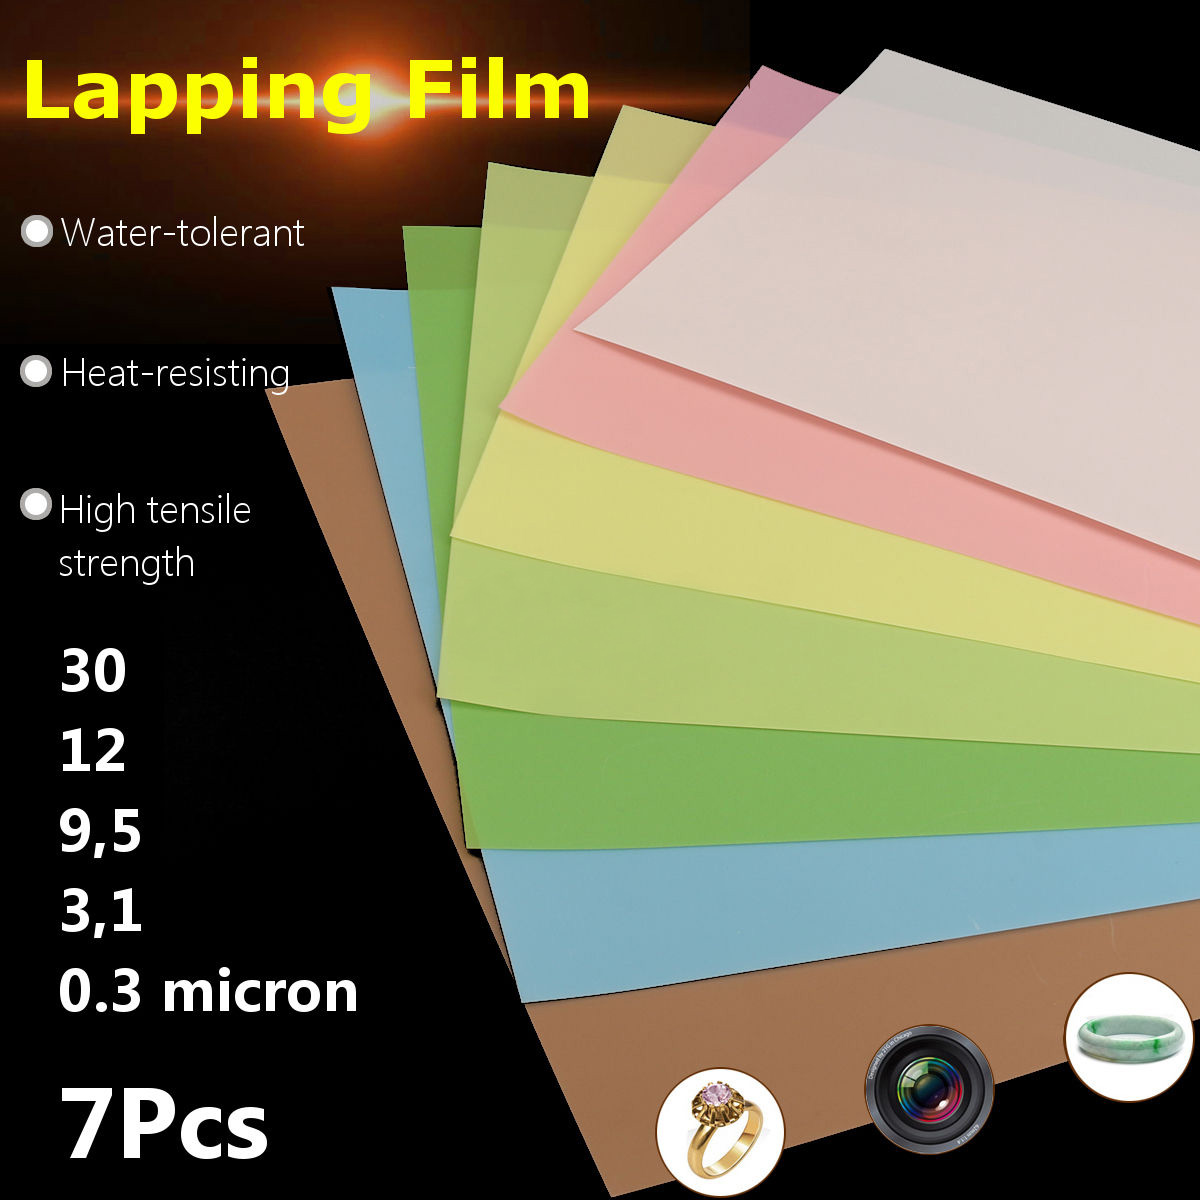 7PCS 8.7 X 11 Lapping Film Sheets 1 Each Of 30,12,9,5,3,1, & 0.3μ Type Sale